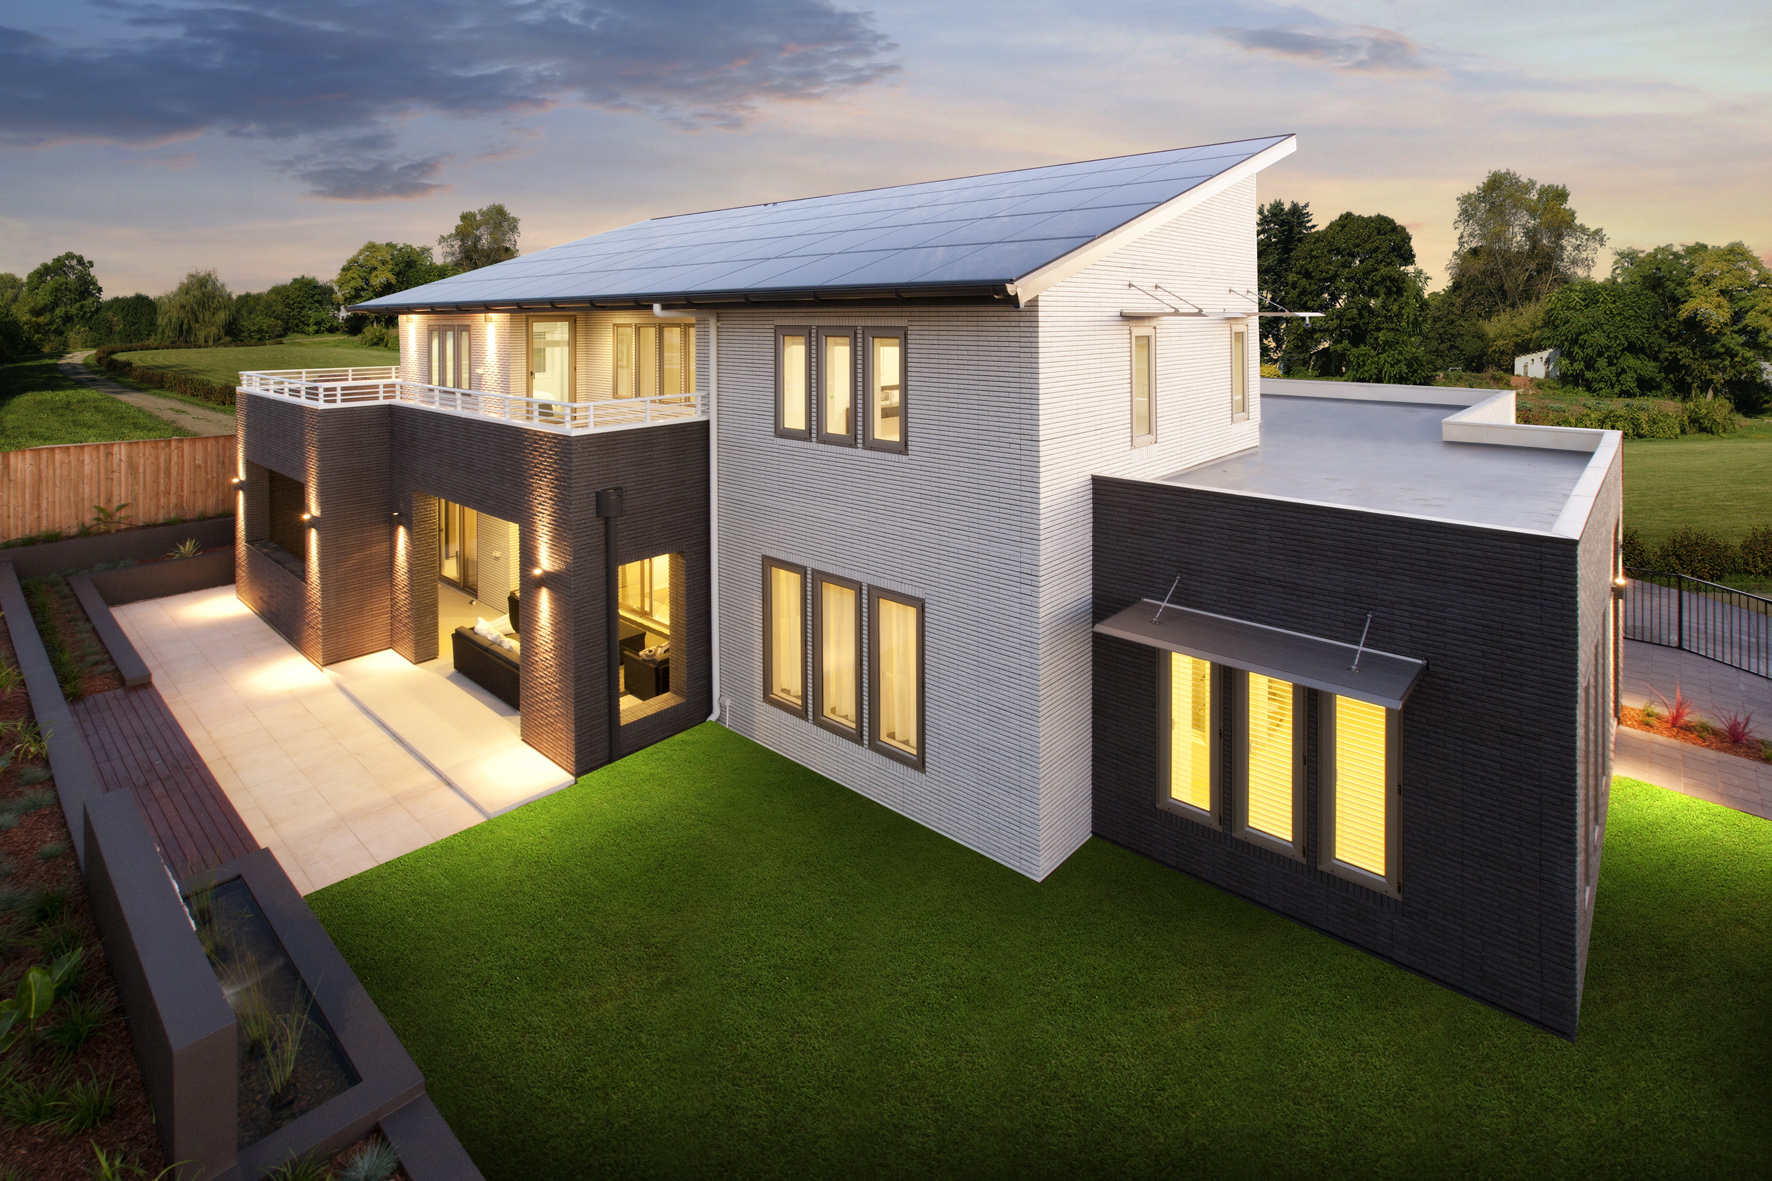 New design houses with Energy Efficiency!